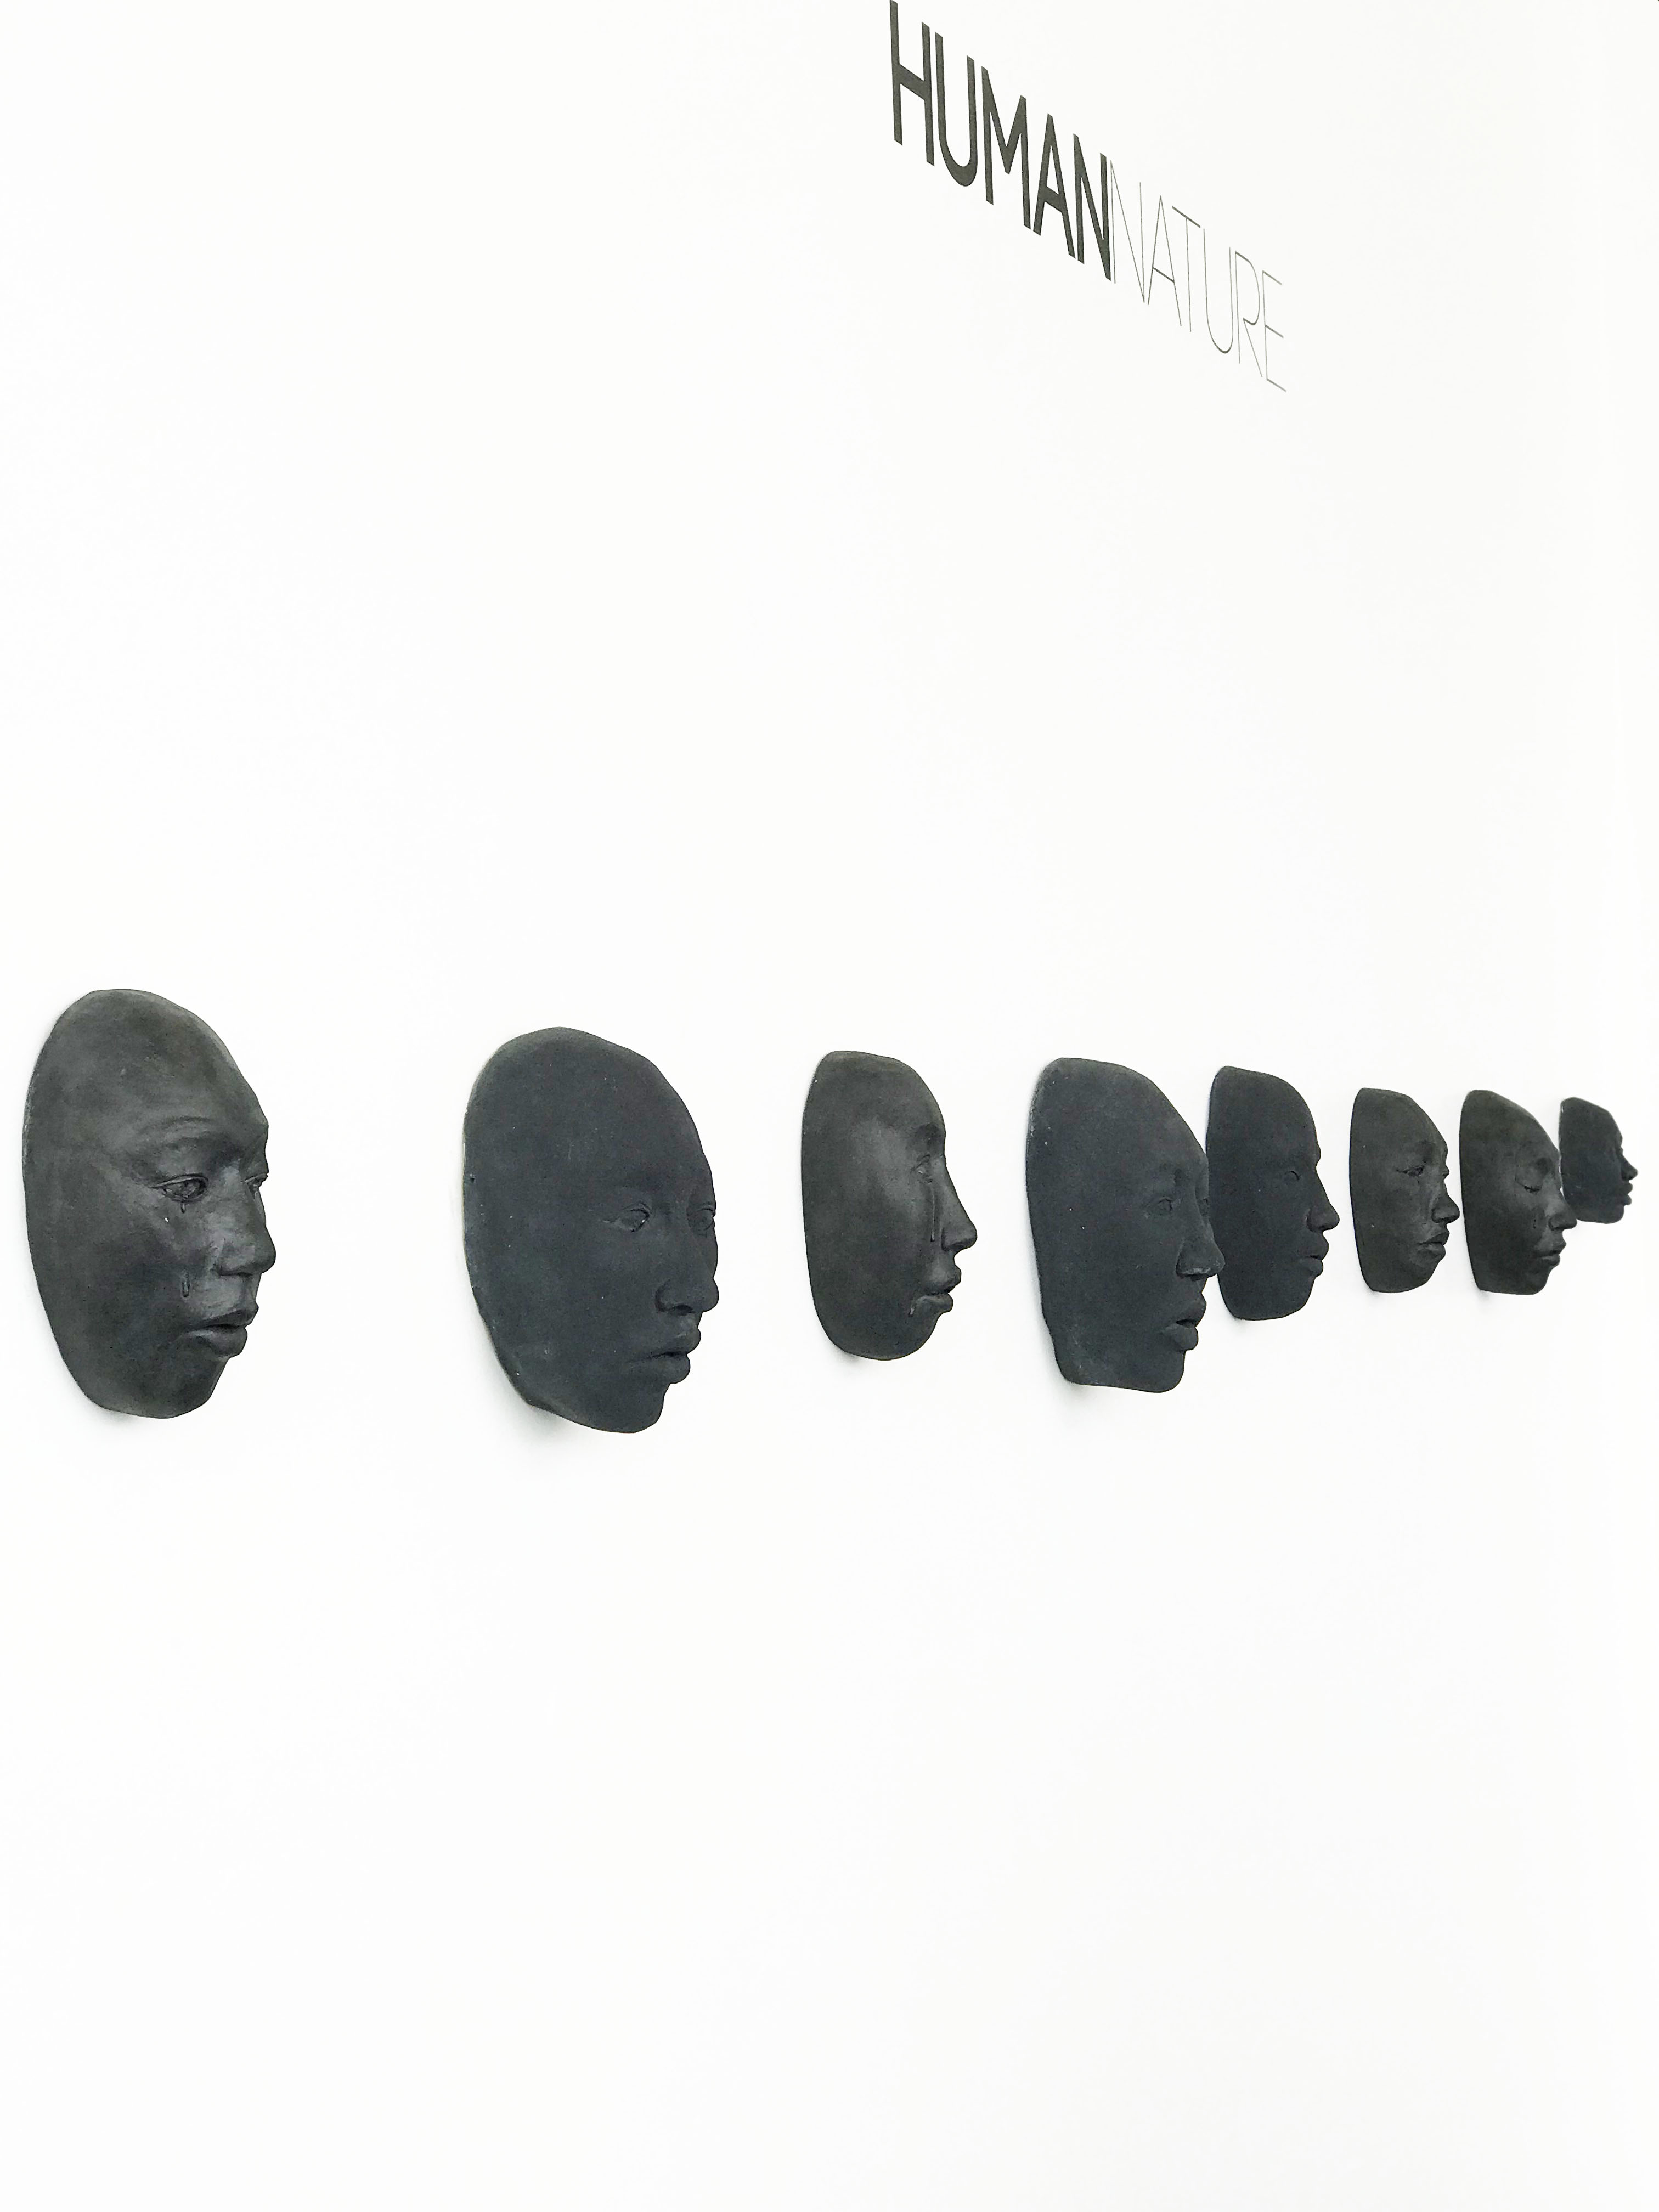 """8 black ceramic faces, mounted on a white wall below the words, """"Human Nature."""""""